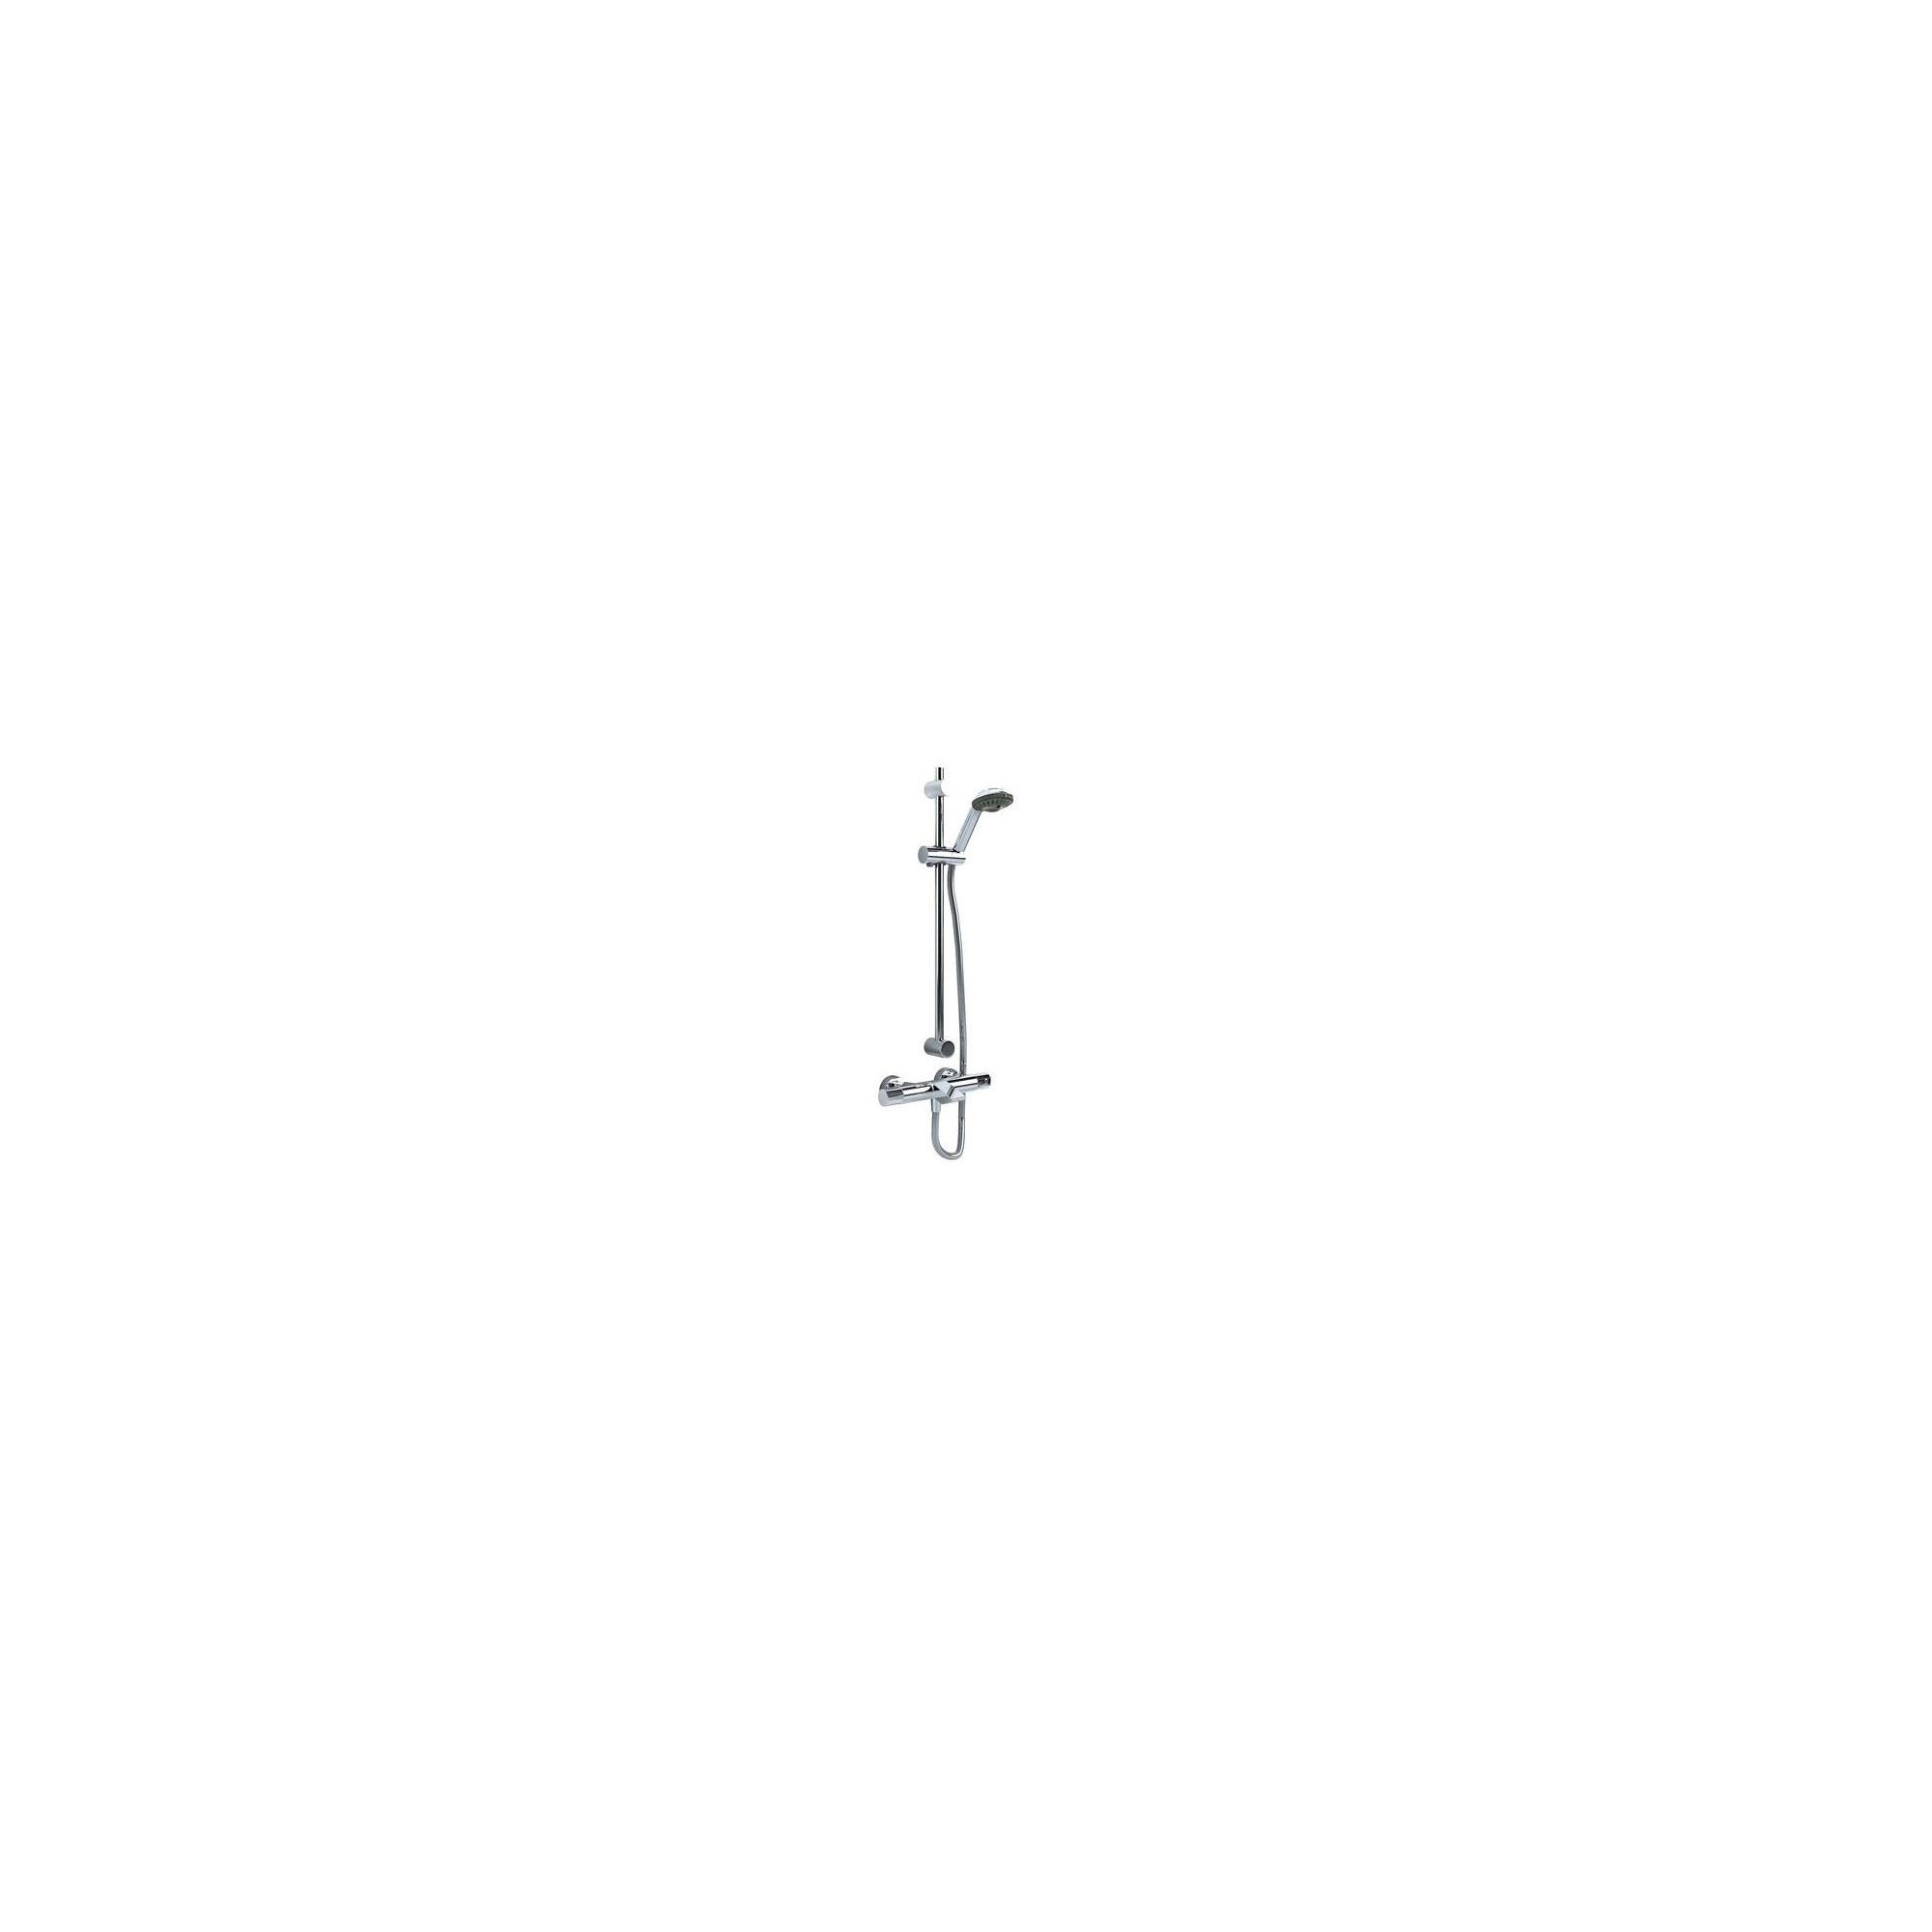 Inta Vue Thermostatic Bath Shower Mixer Tap with Shower Kit Chrome at Tesco Direct